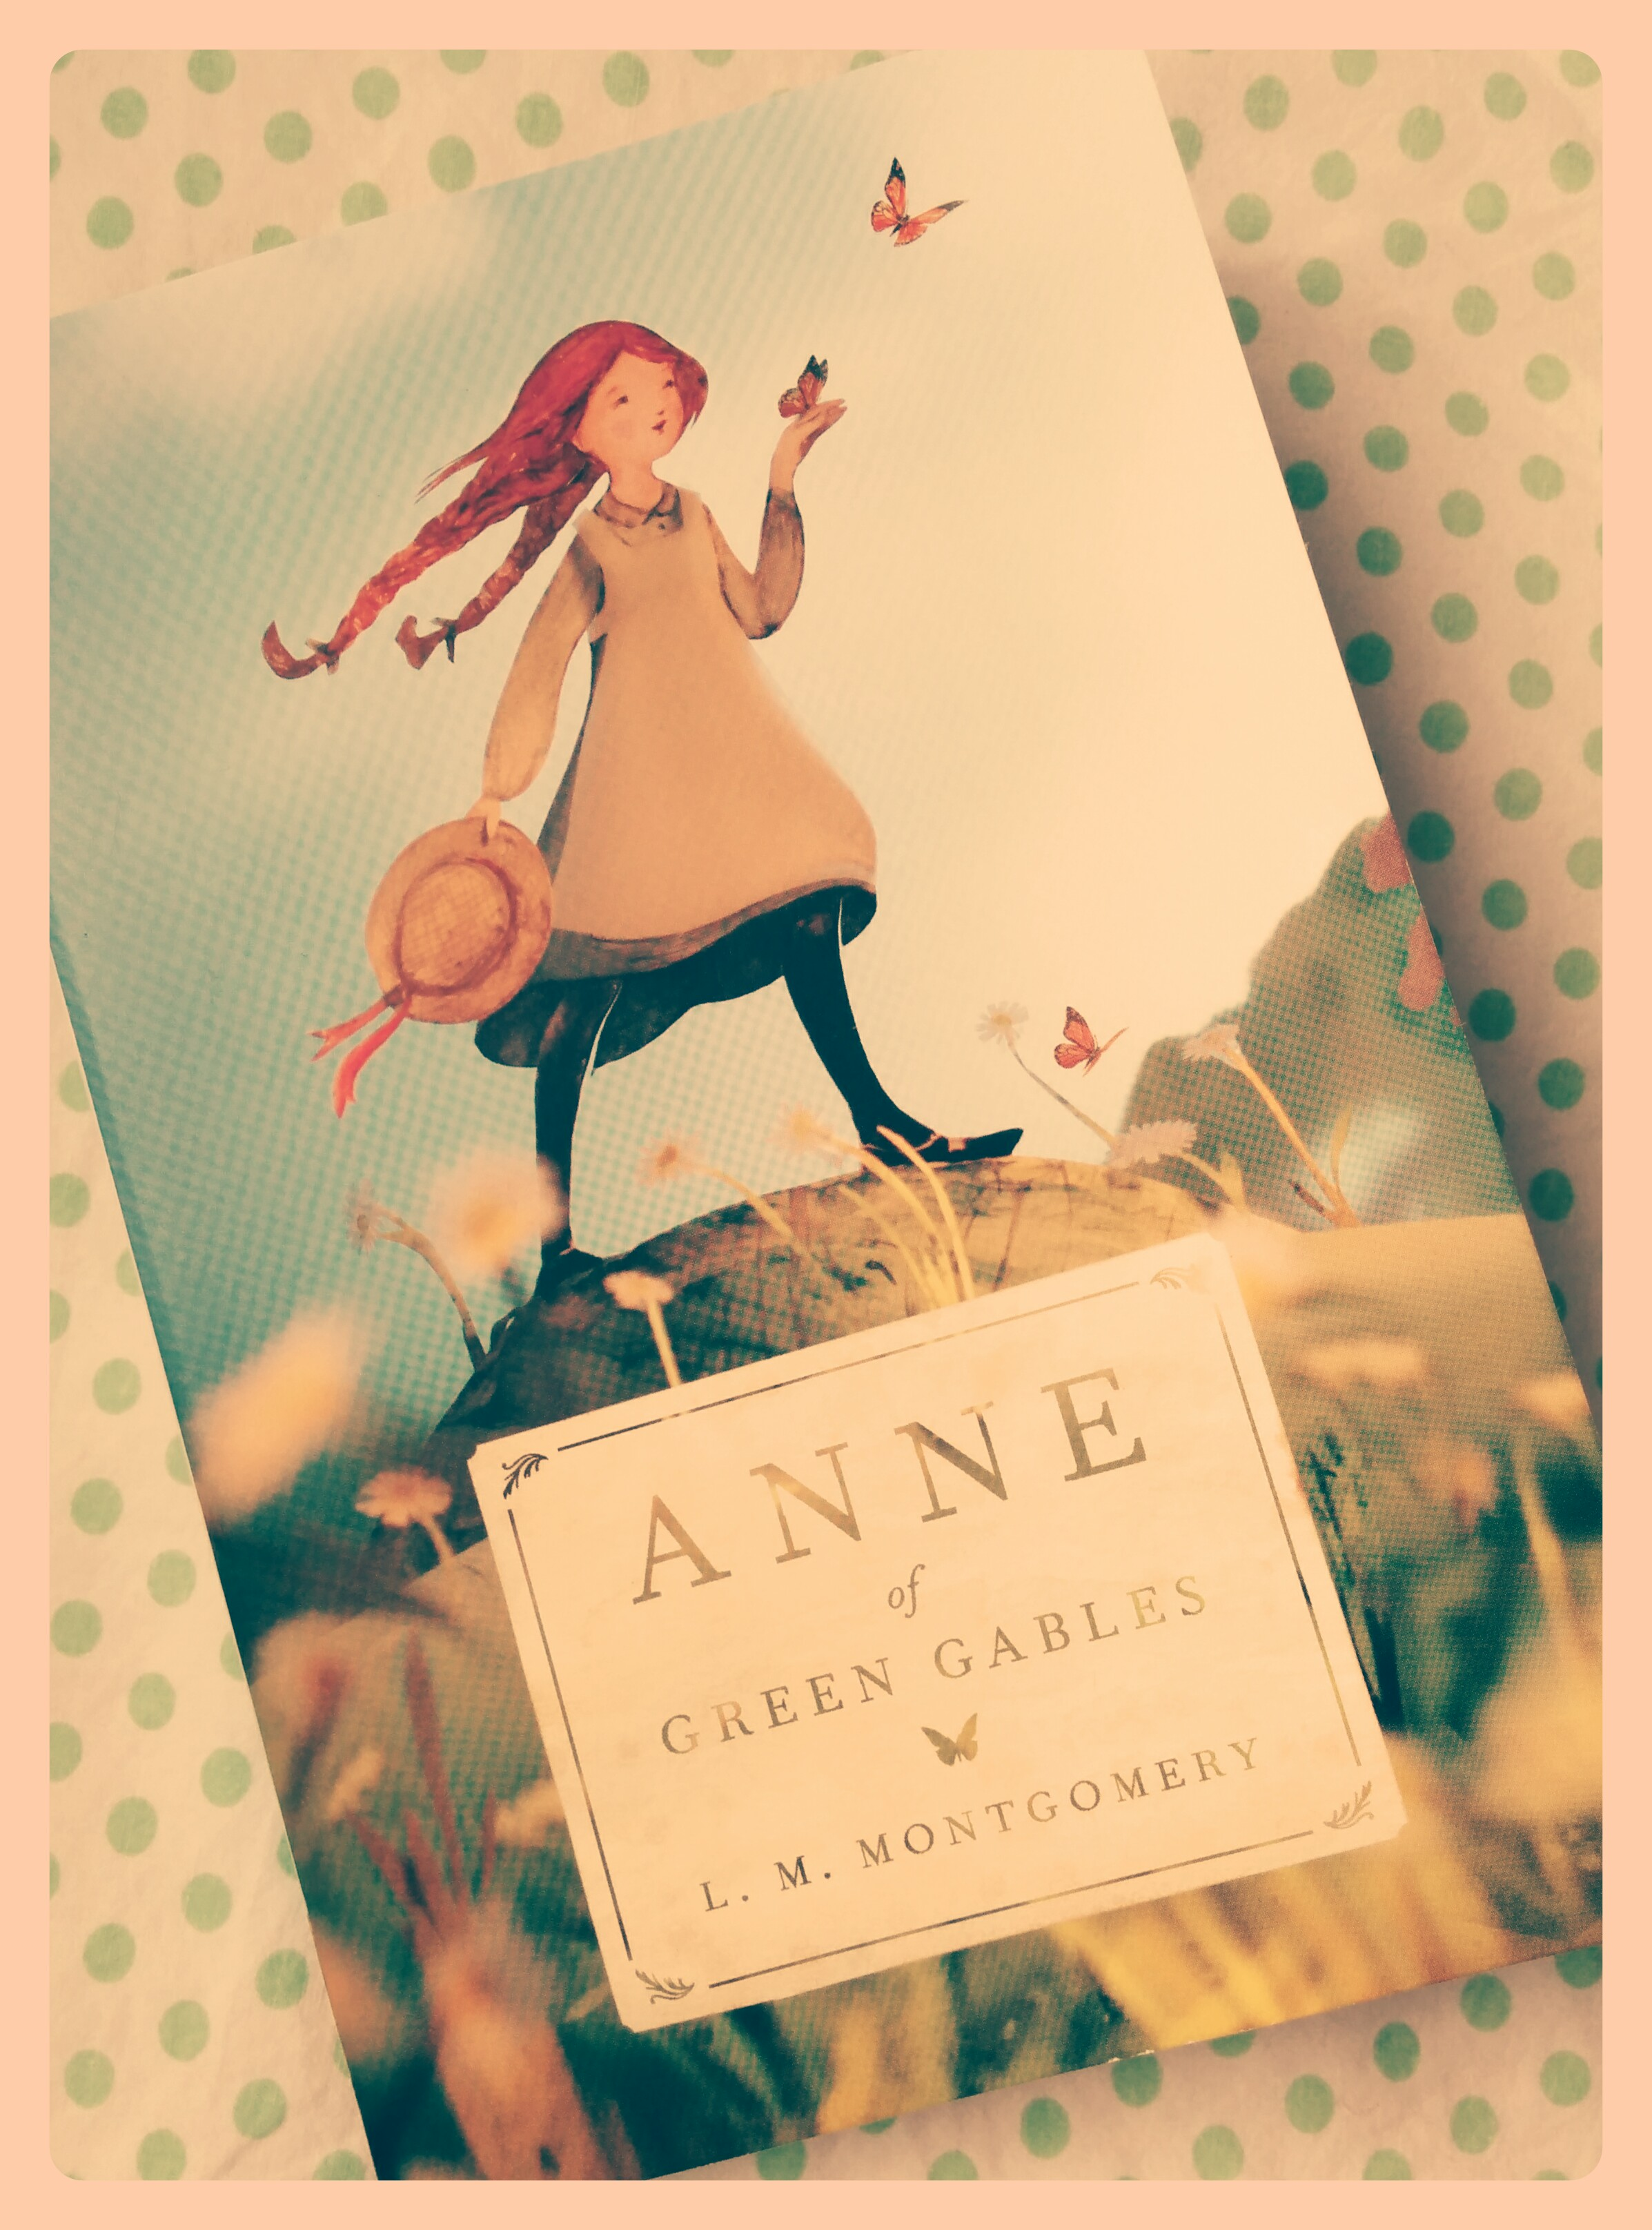 Our brand-new edition of Anne of Green Gables features paper art by Elly MacKay. Check out her lovely creations at www.ellymackay.com.